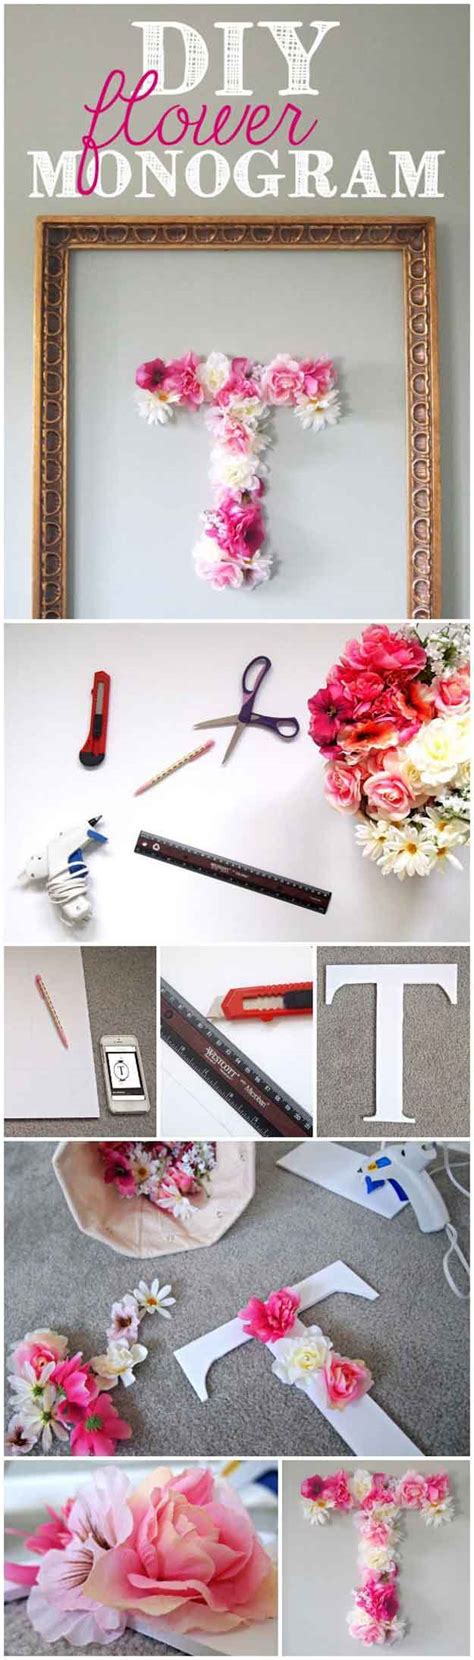 diy projects for bedroom diy ready - Diy Crafts For Teenagers Room